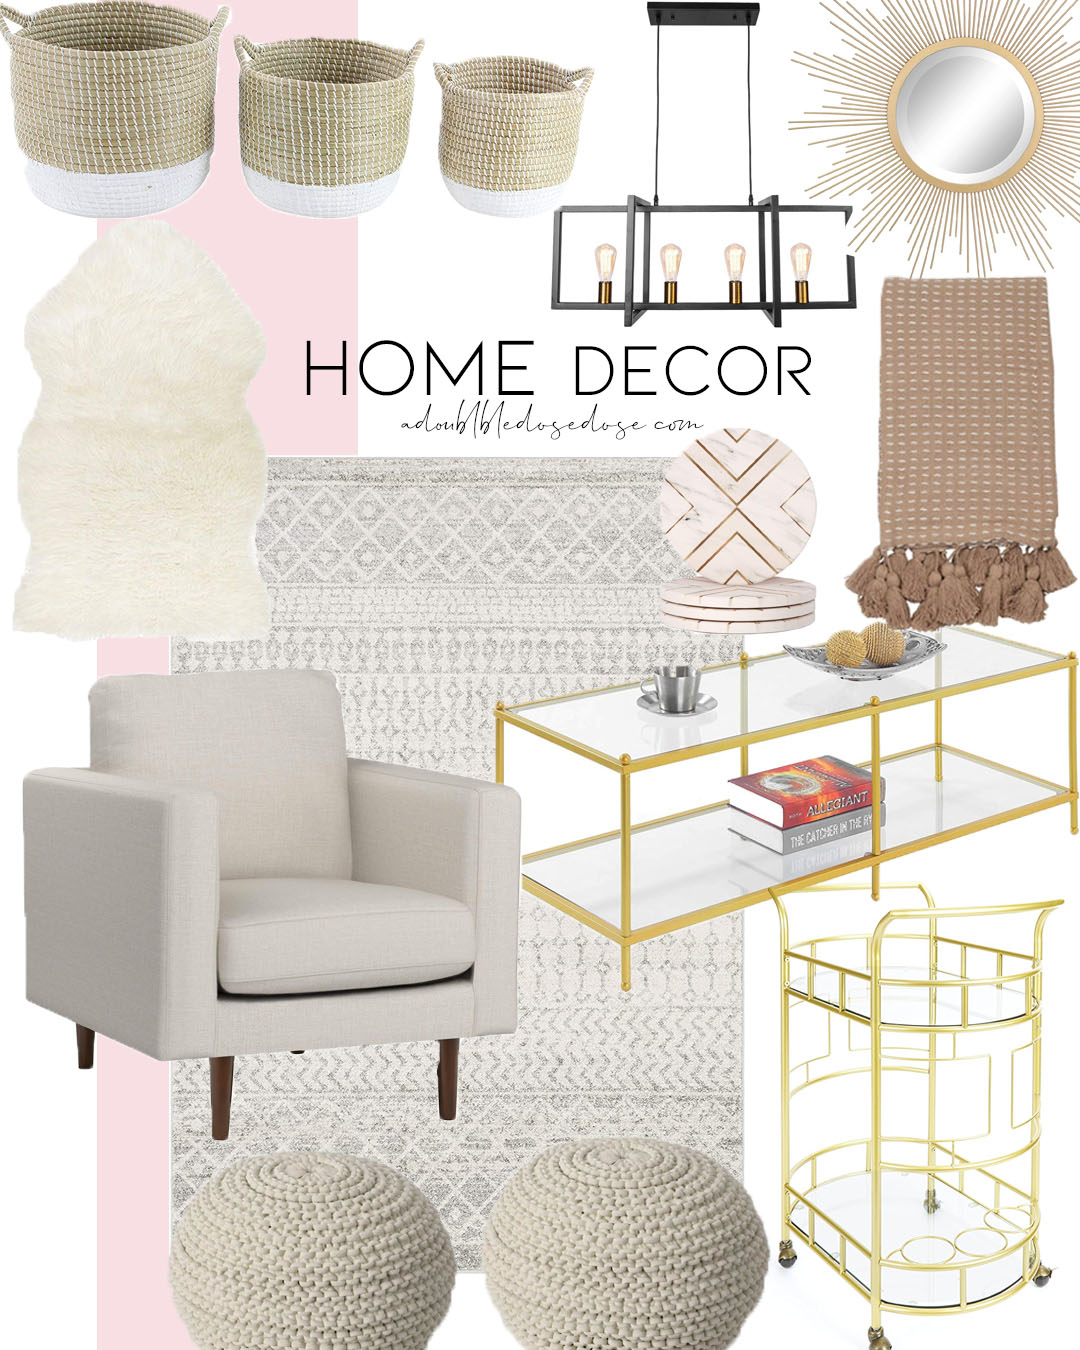 affordable home decor from target and amazon : accent chair, area rug, throw blanket, bar cart for summer 2020 | adoubledose.com